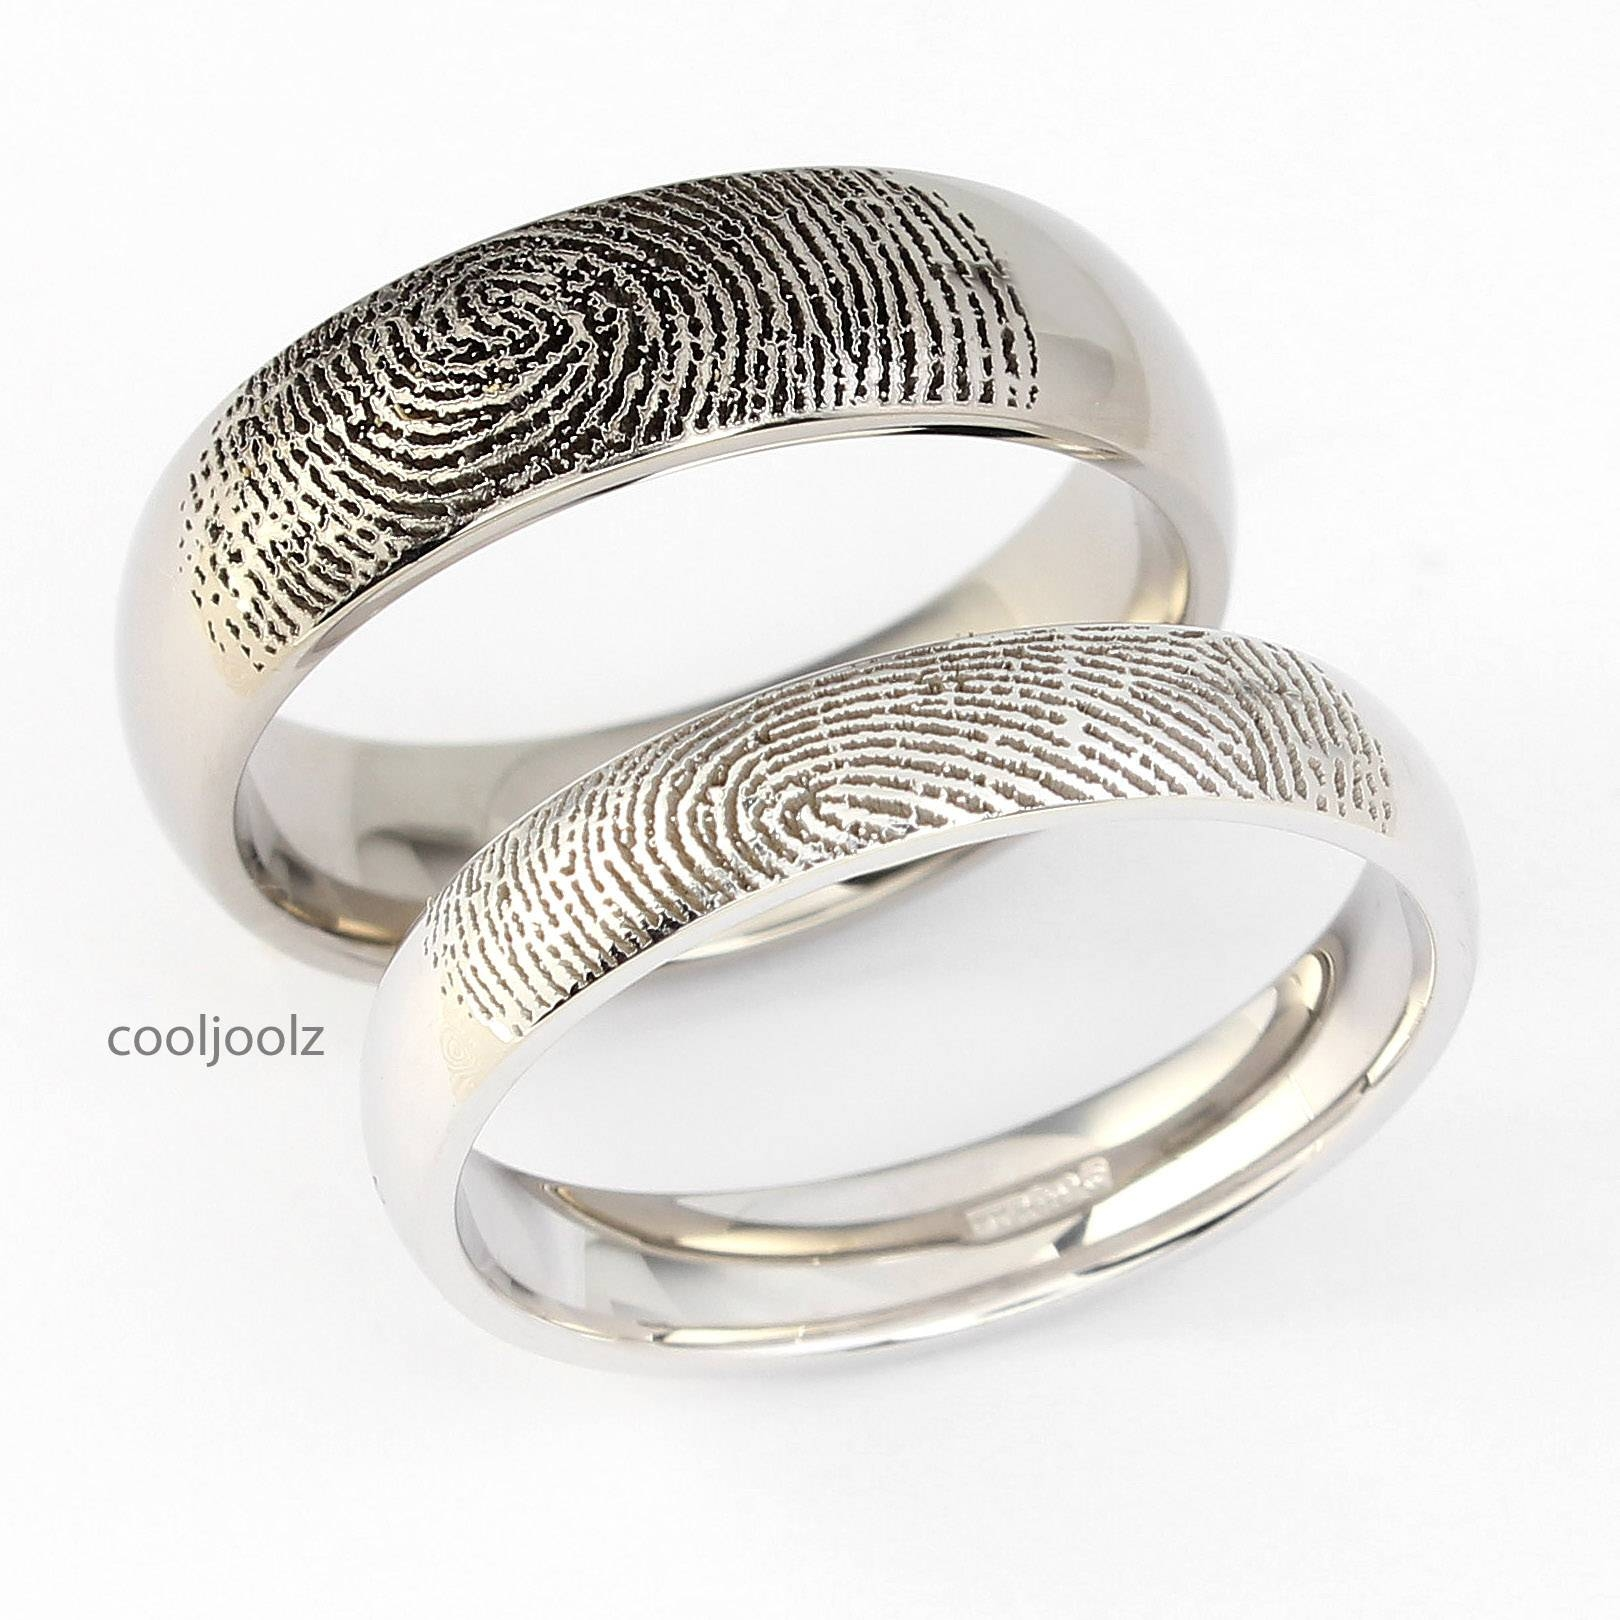 Cooljoolz | Wedding Rings Leedswedding Rings Bradford | Engagement Within Fingerprint Wedding Rings (View 5 of 15)